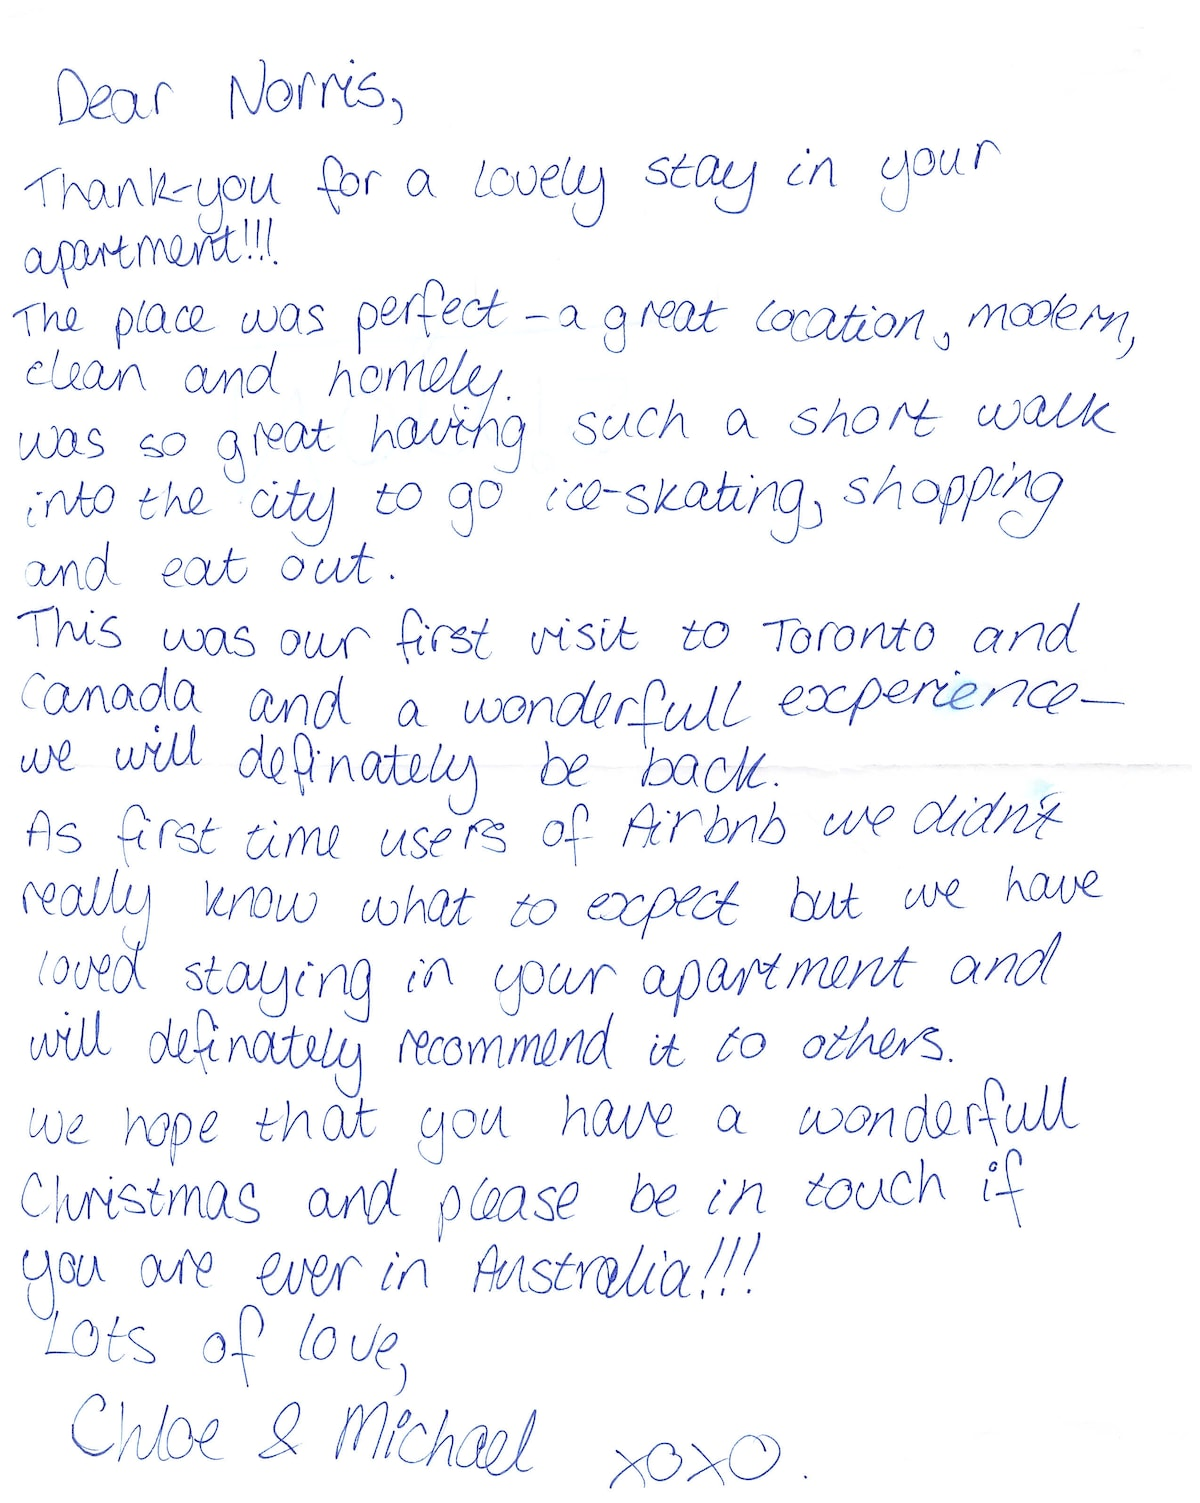 A letter from a guest. :)